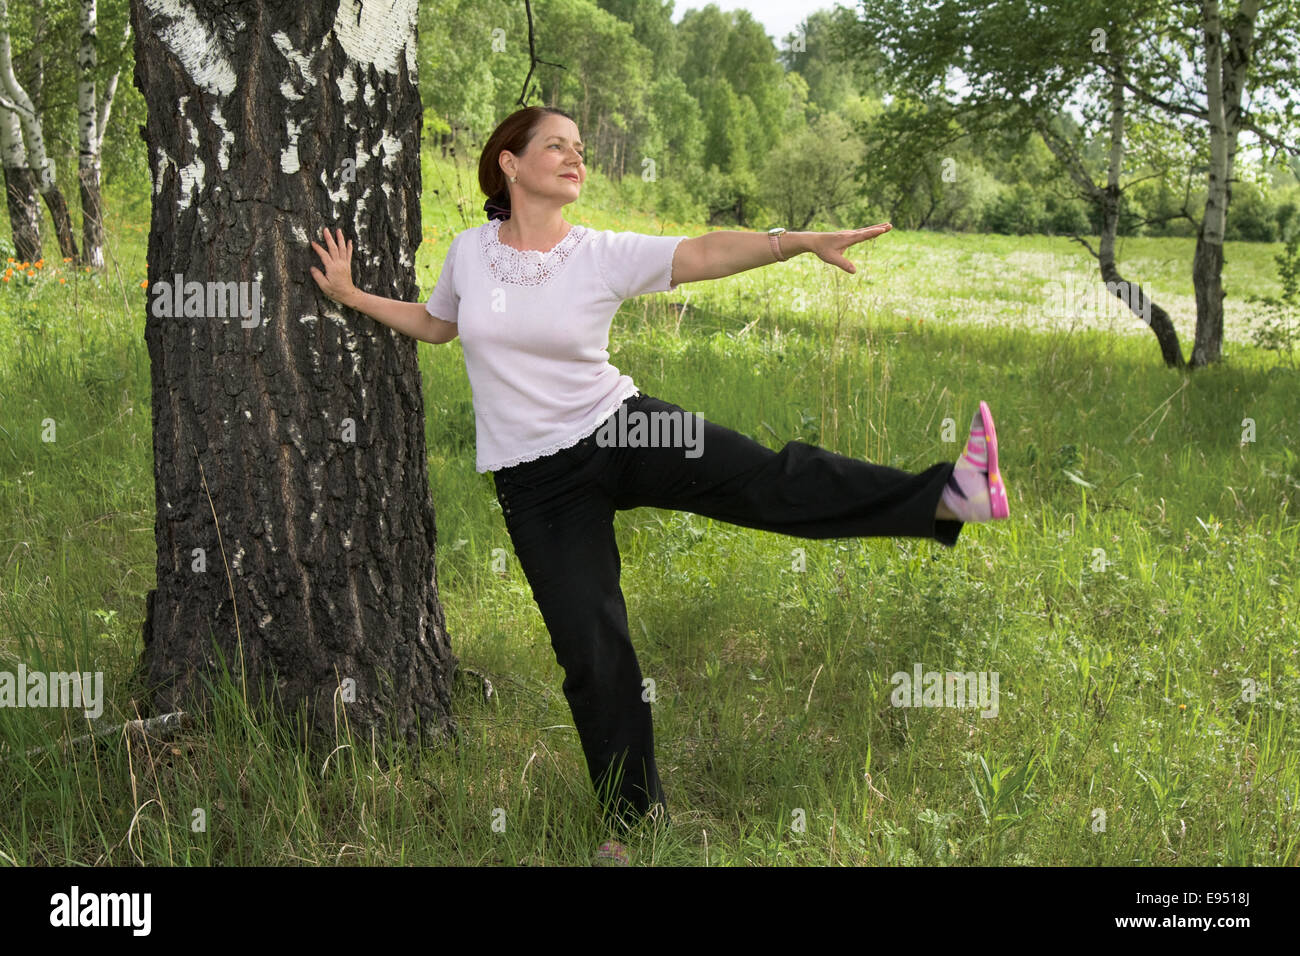 Gymnastics - Stock Image